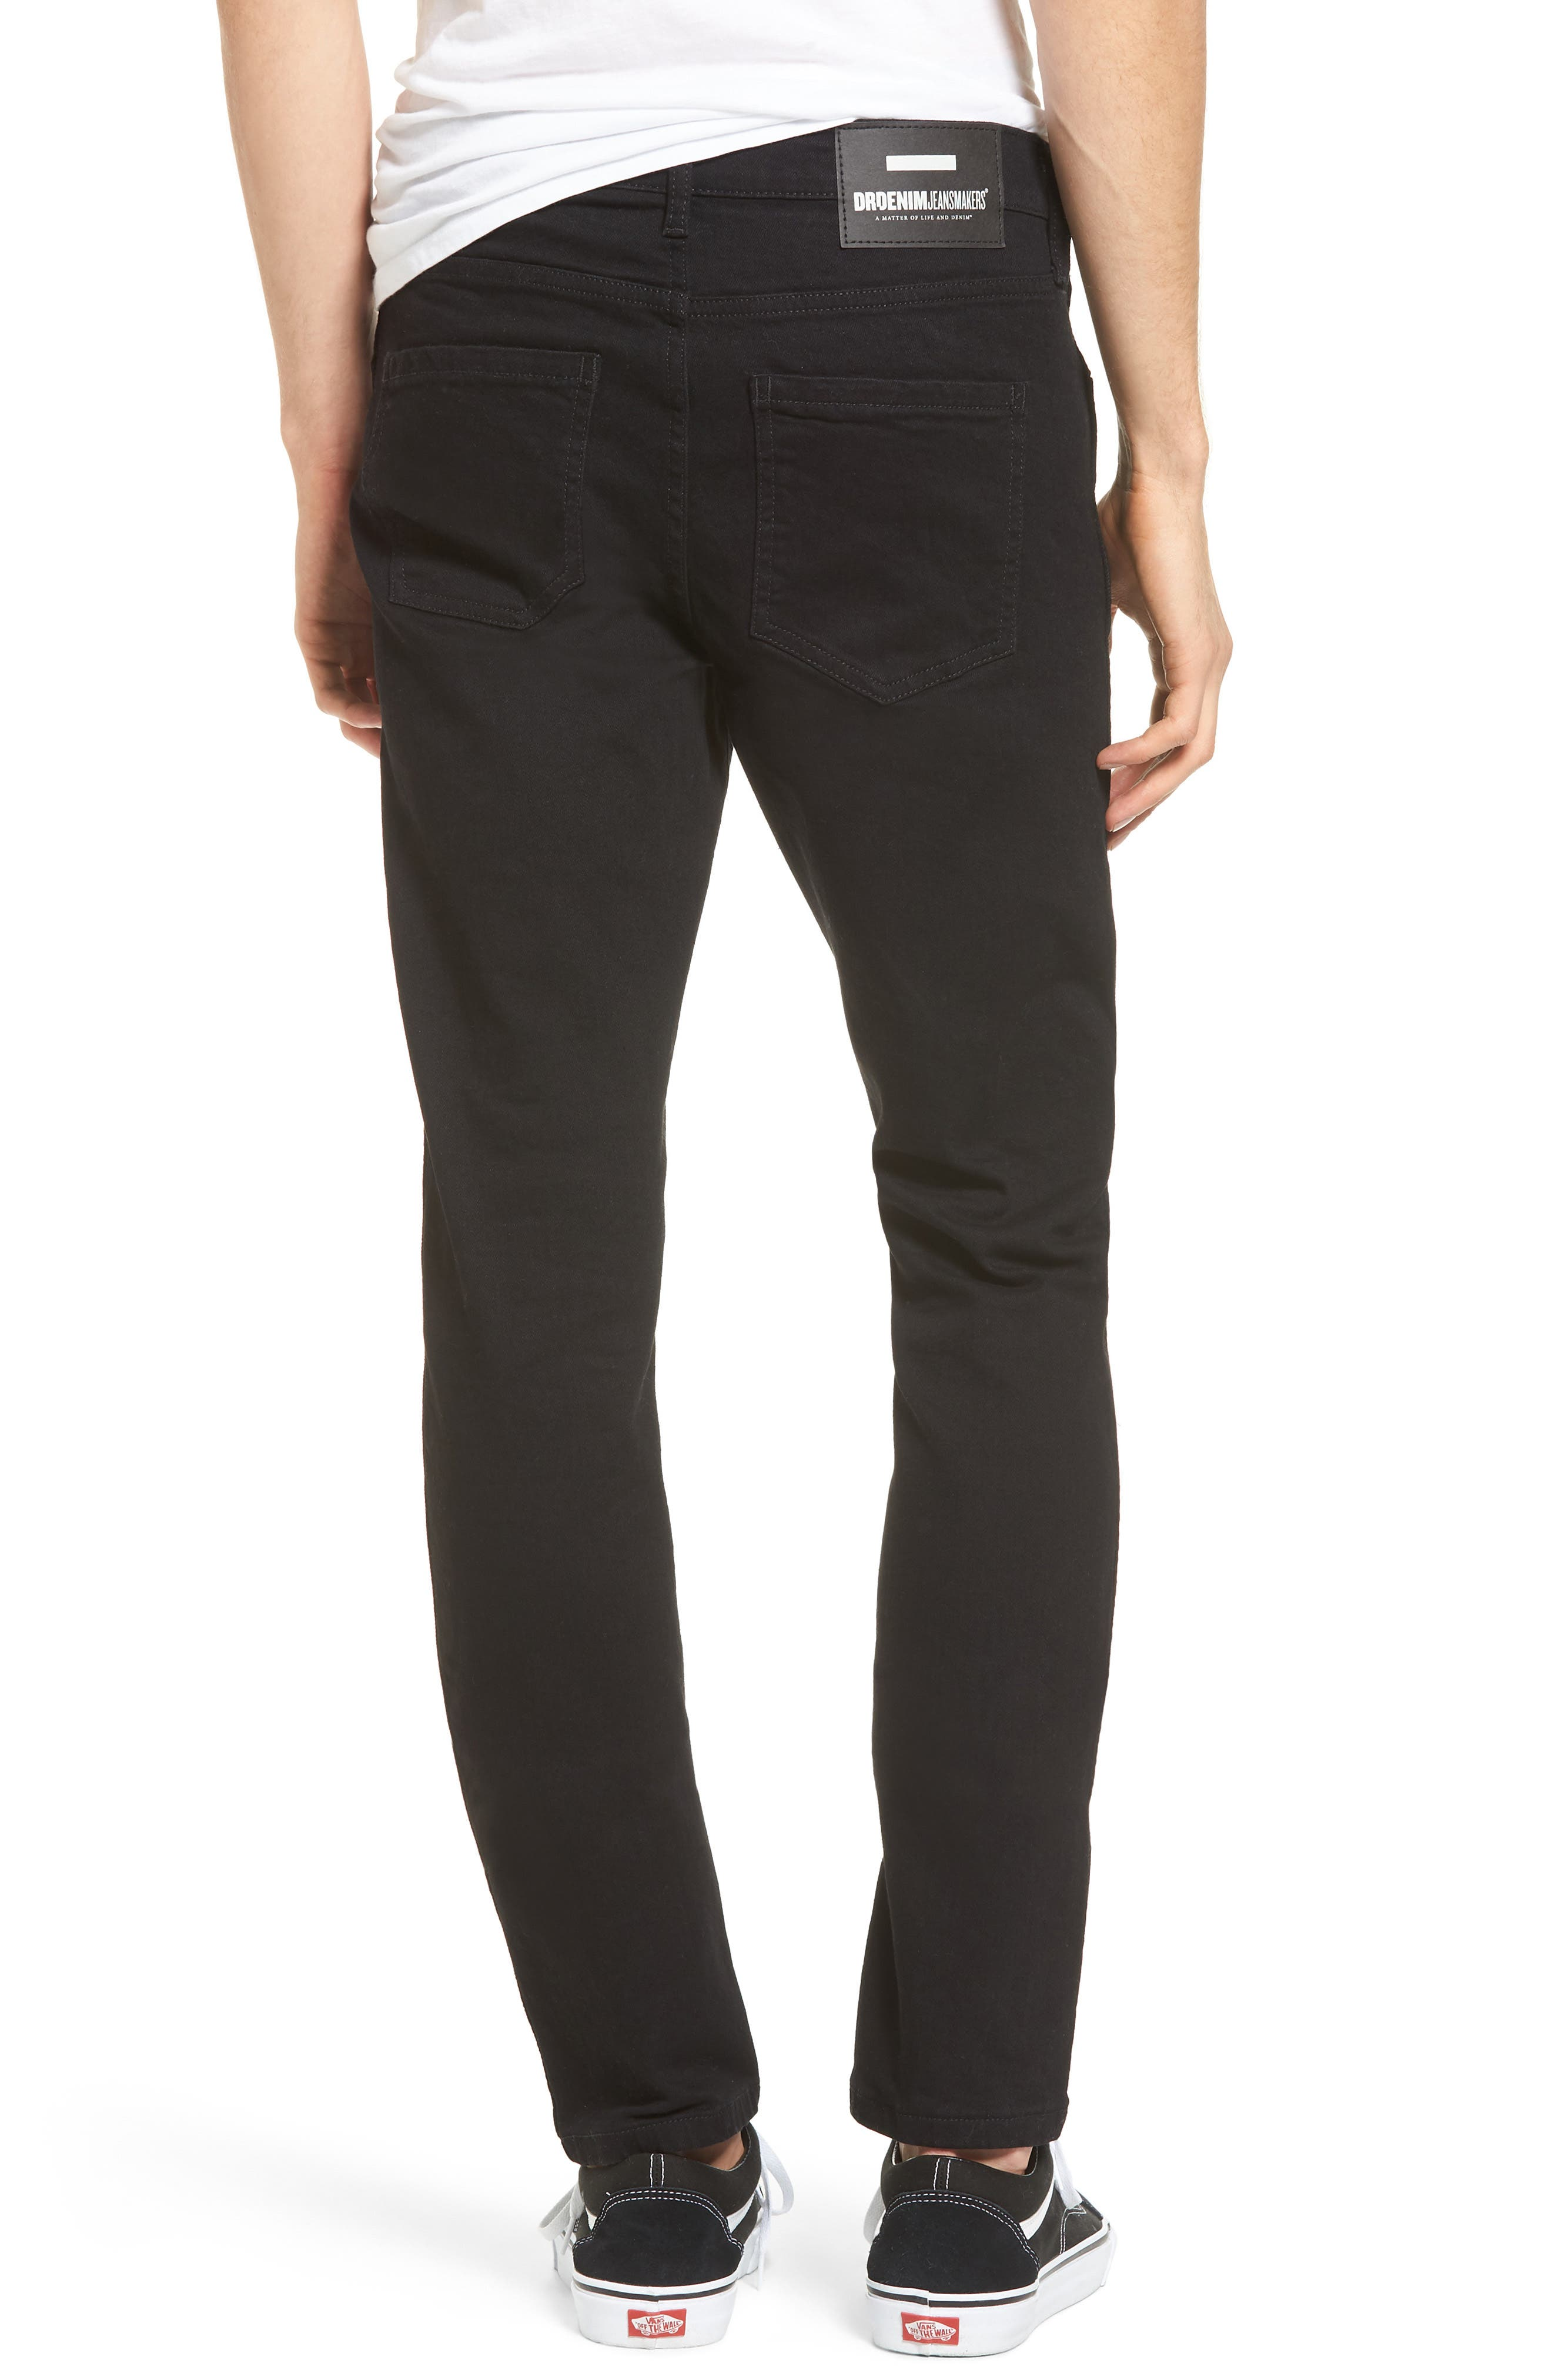 Snap Skinny Fit Jeans,                             Alternate thumbnail 2, color,                             ORGANIC BLACK